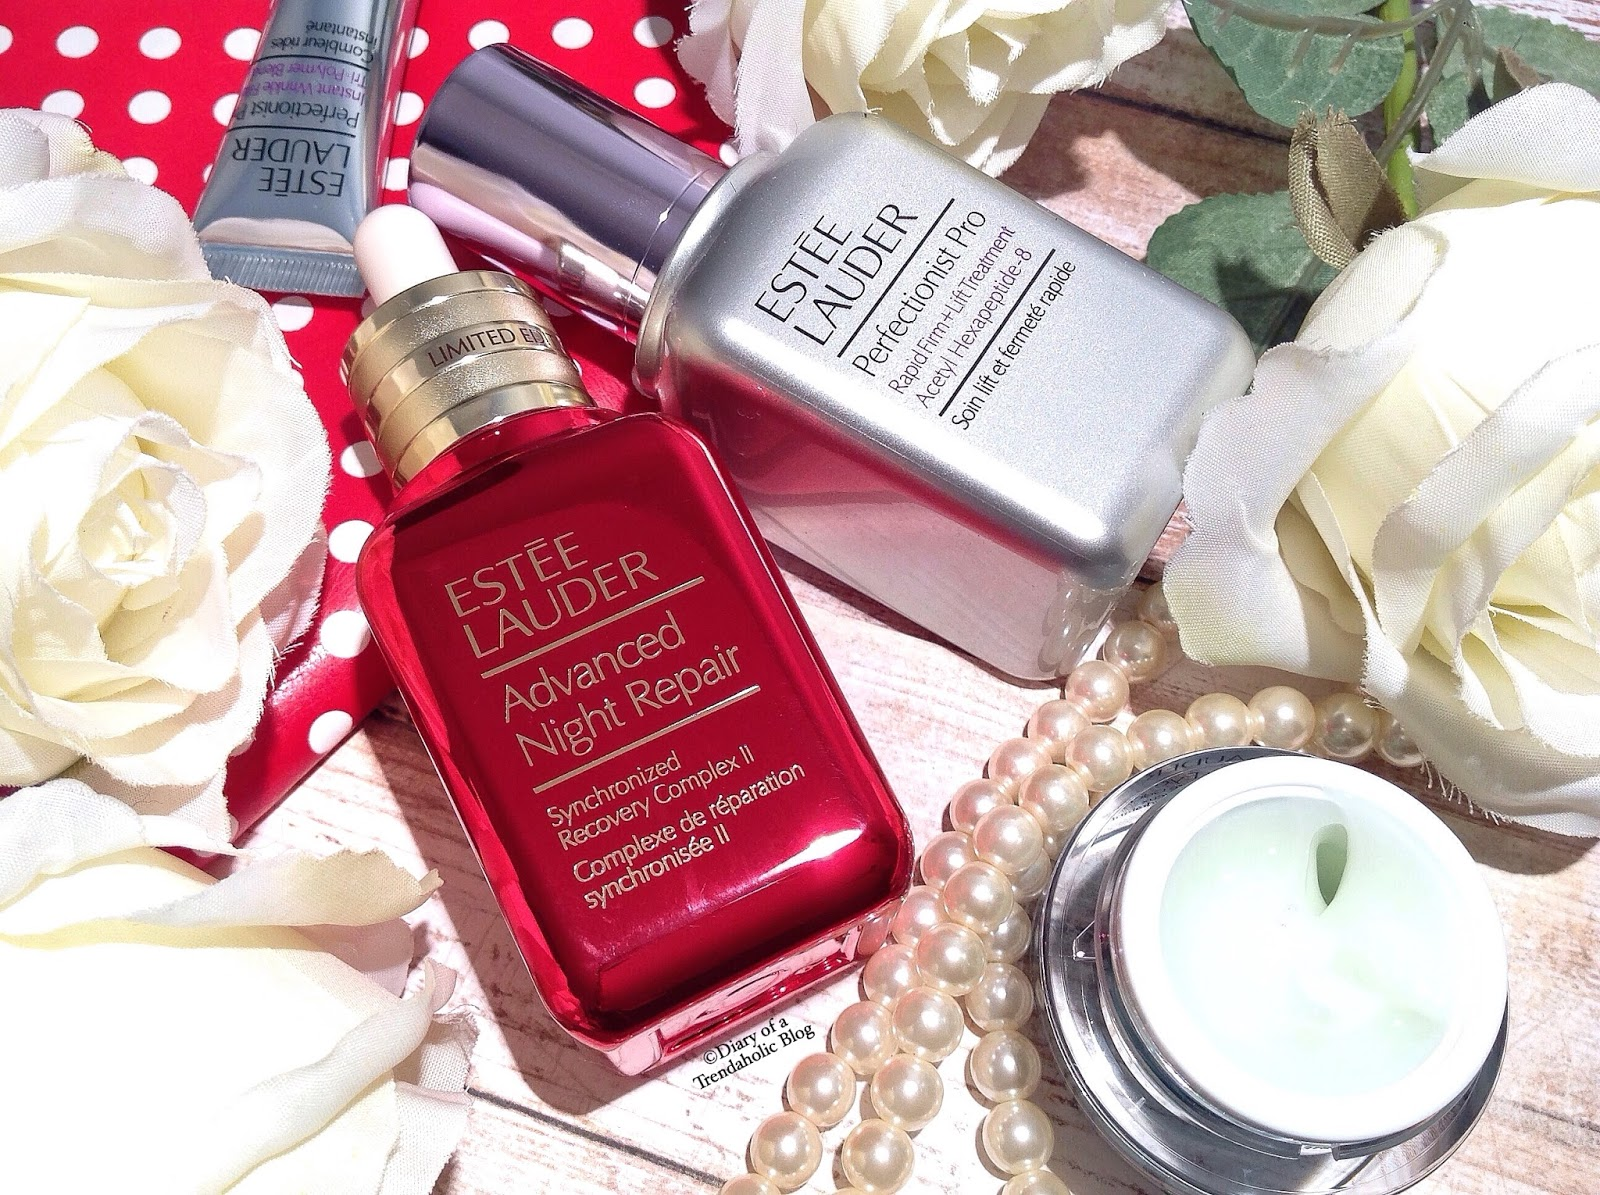 Diary Of A Trendaholic Estee Lauder Perfectionist Pro Rapid Firm Wrinkle Lifting Lauders Treatment 14500 Targets Aging Skin To Improve The Appearance Wrinkles And Sagging Fade Lines Plump Boost Radiance